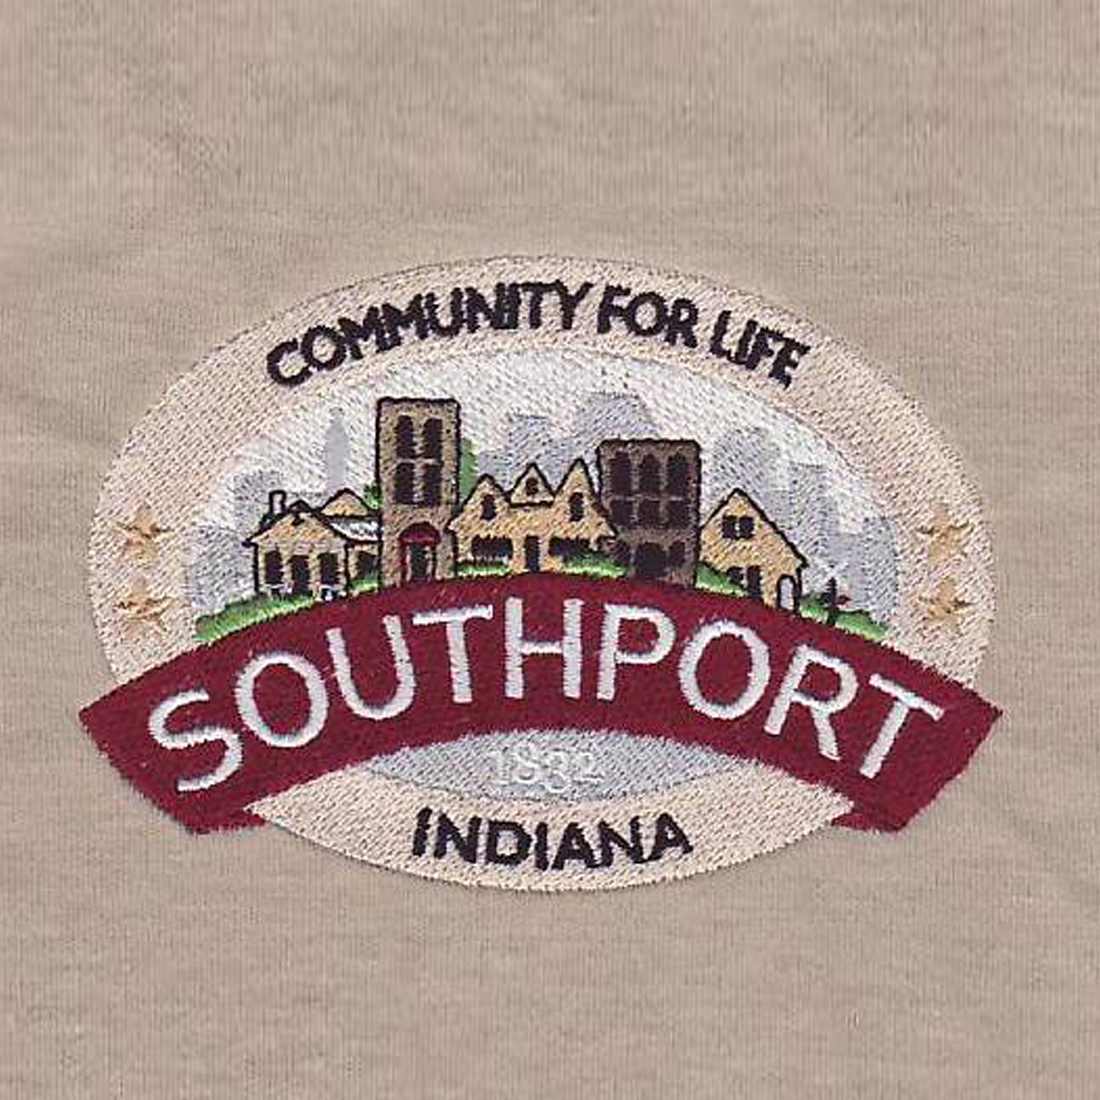 City of Southport, Indiana - City Branding